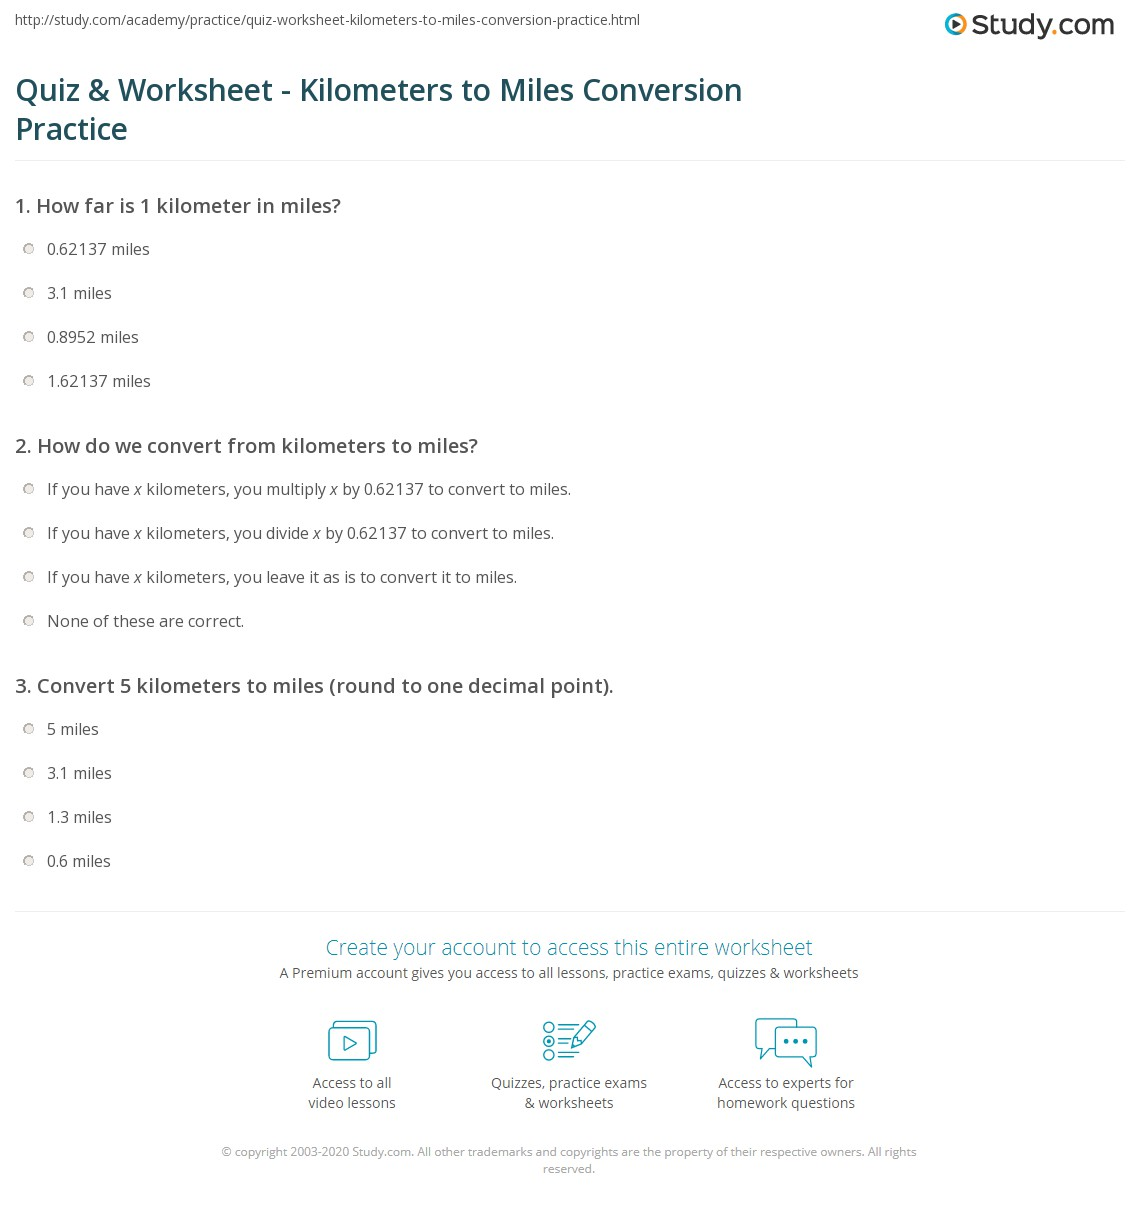 Print Converting 5 Kilometers To Miles Worksheet